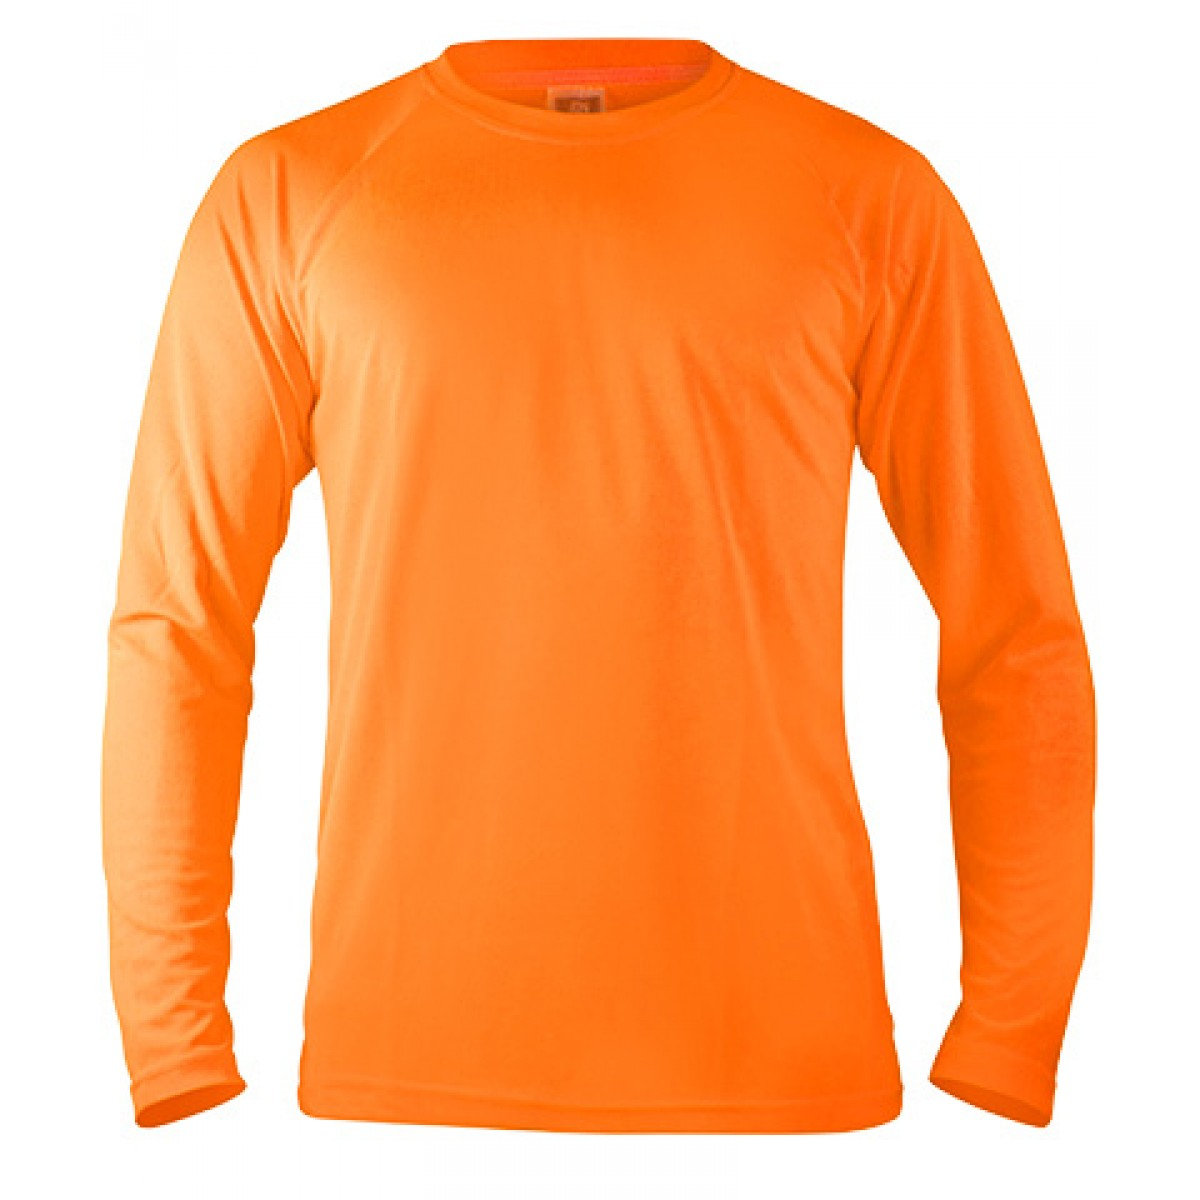 Long Sleeve Performance -Safety Orange-L